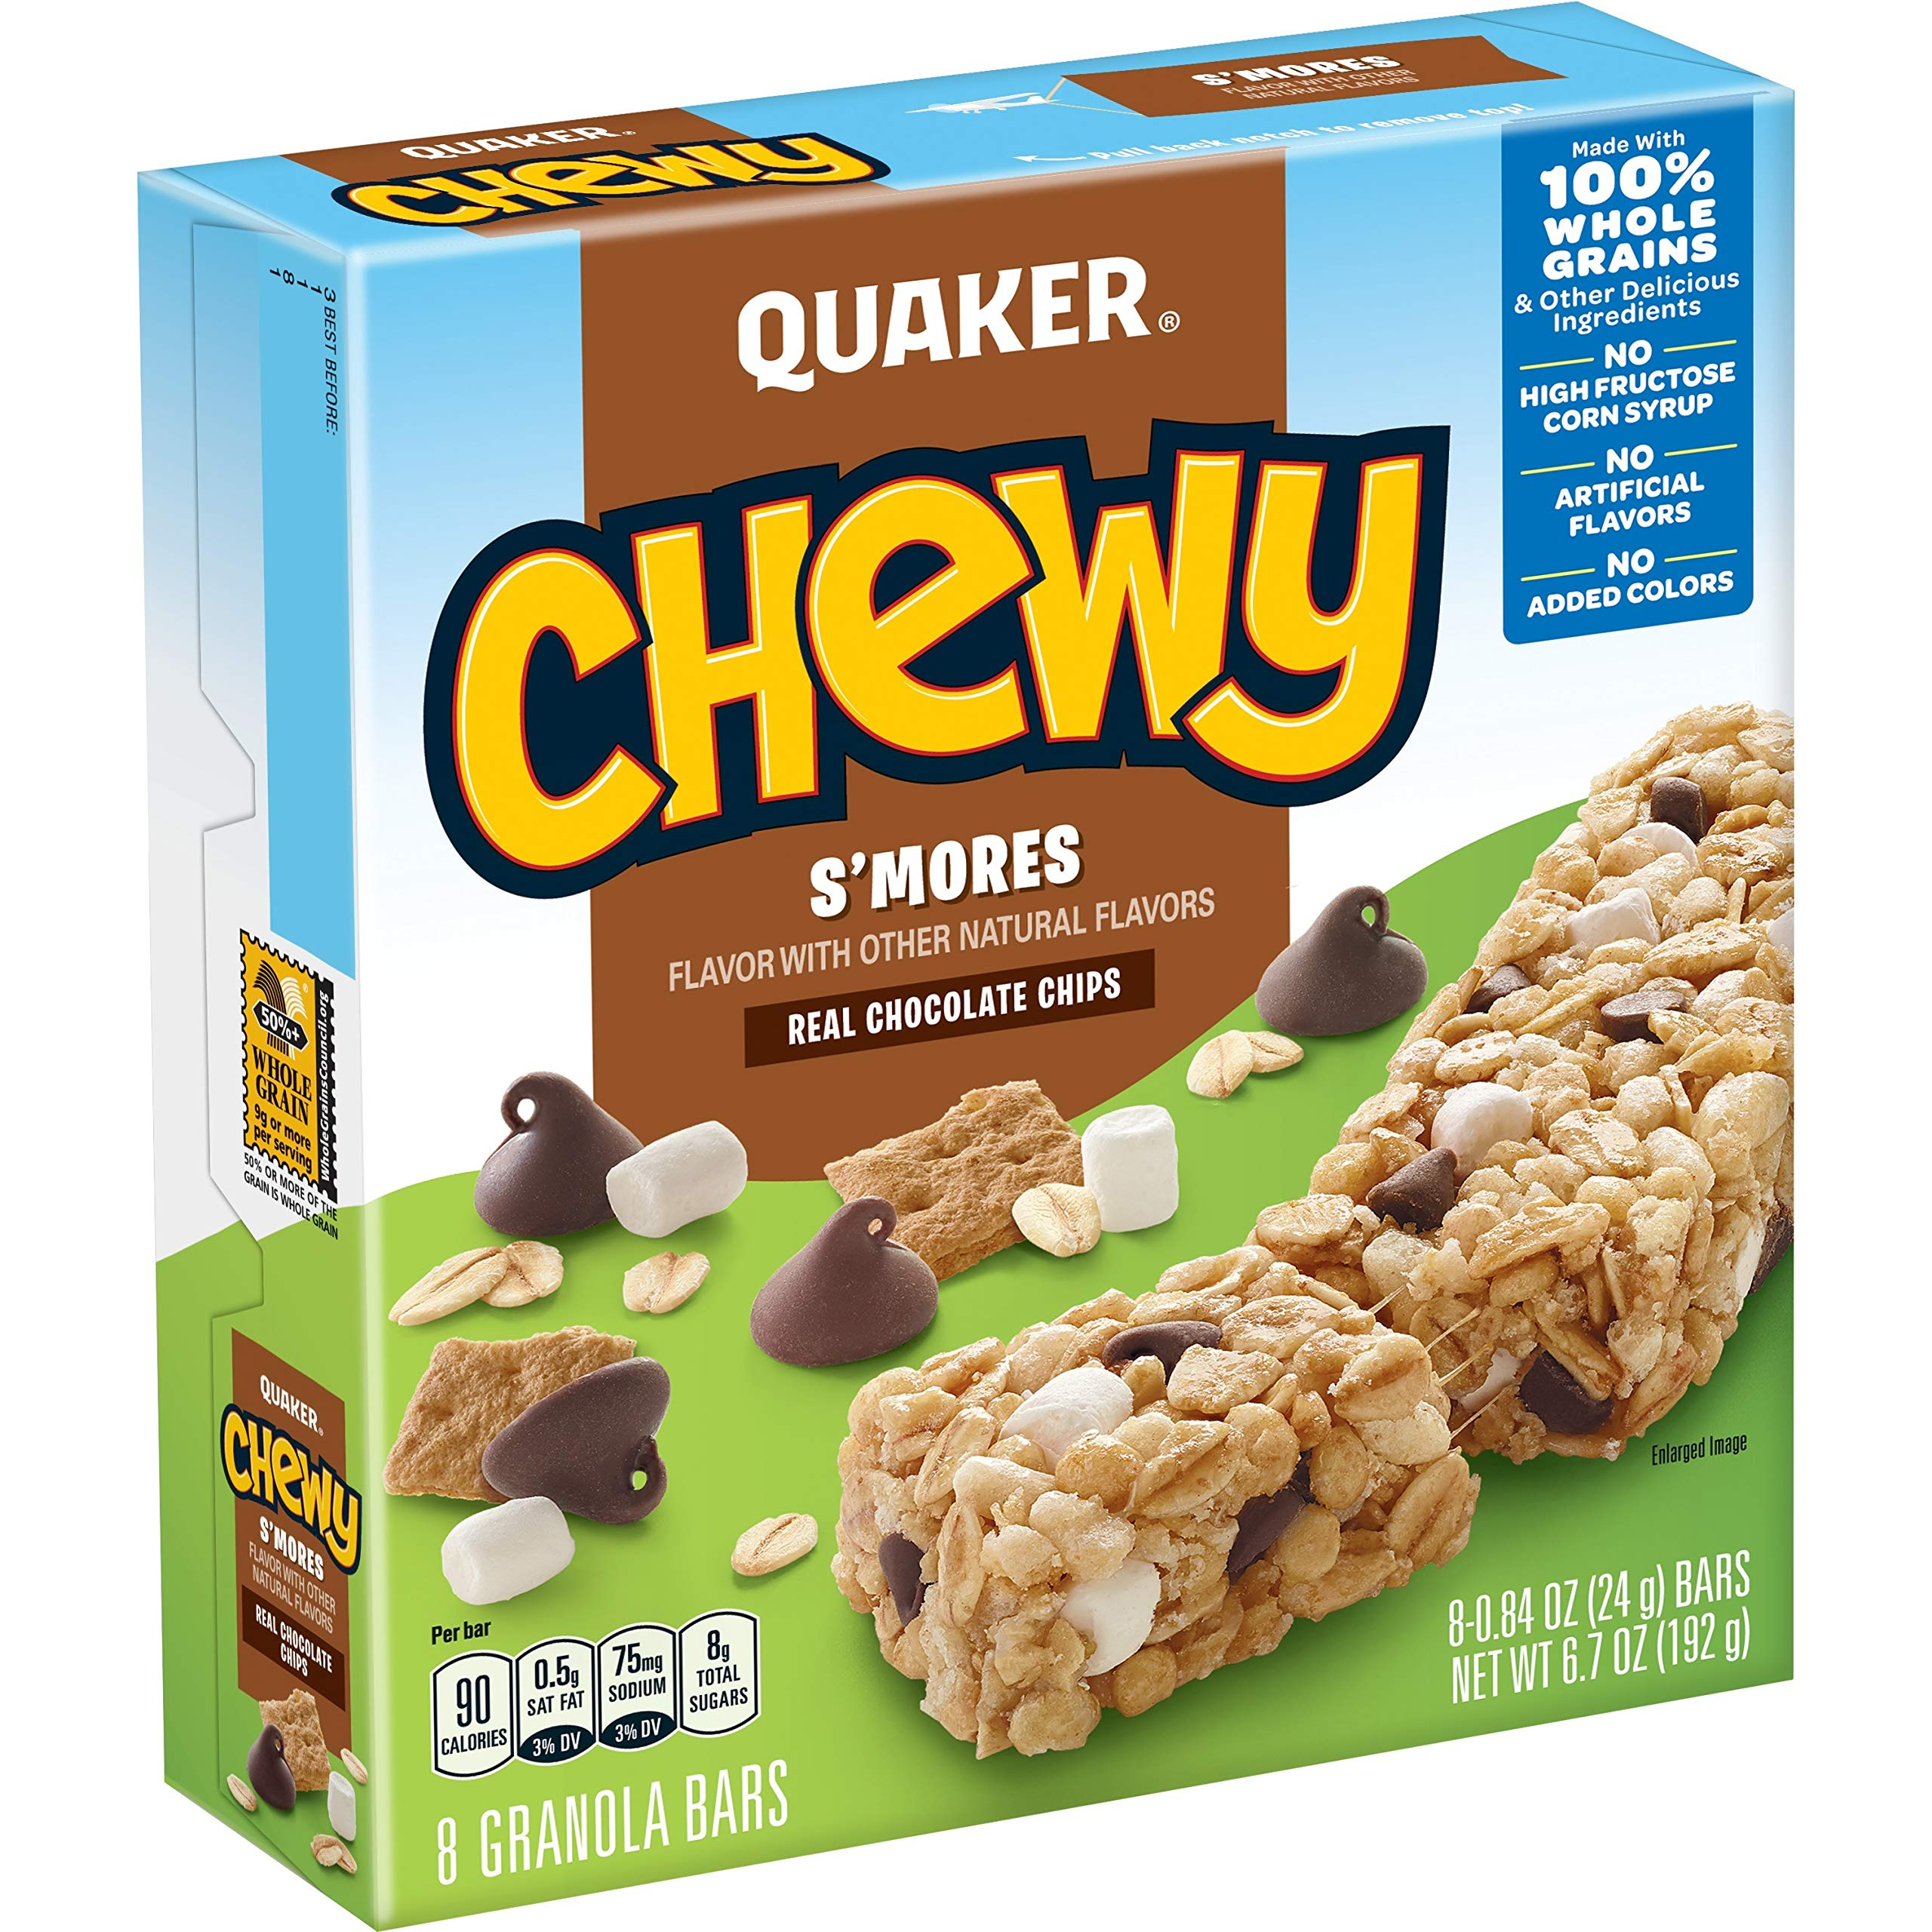 Quaker Chewy Granola Bars, S'mores, (96 Pack)